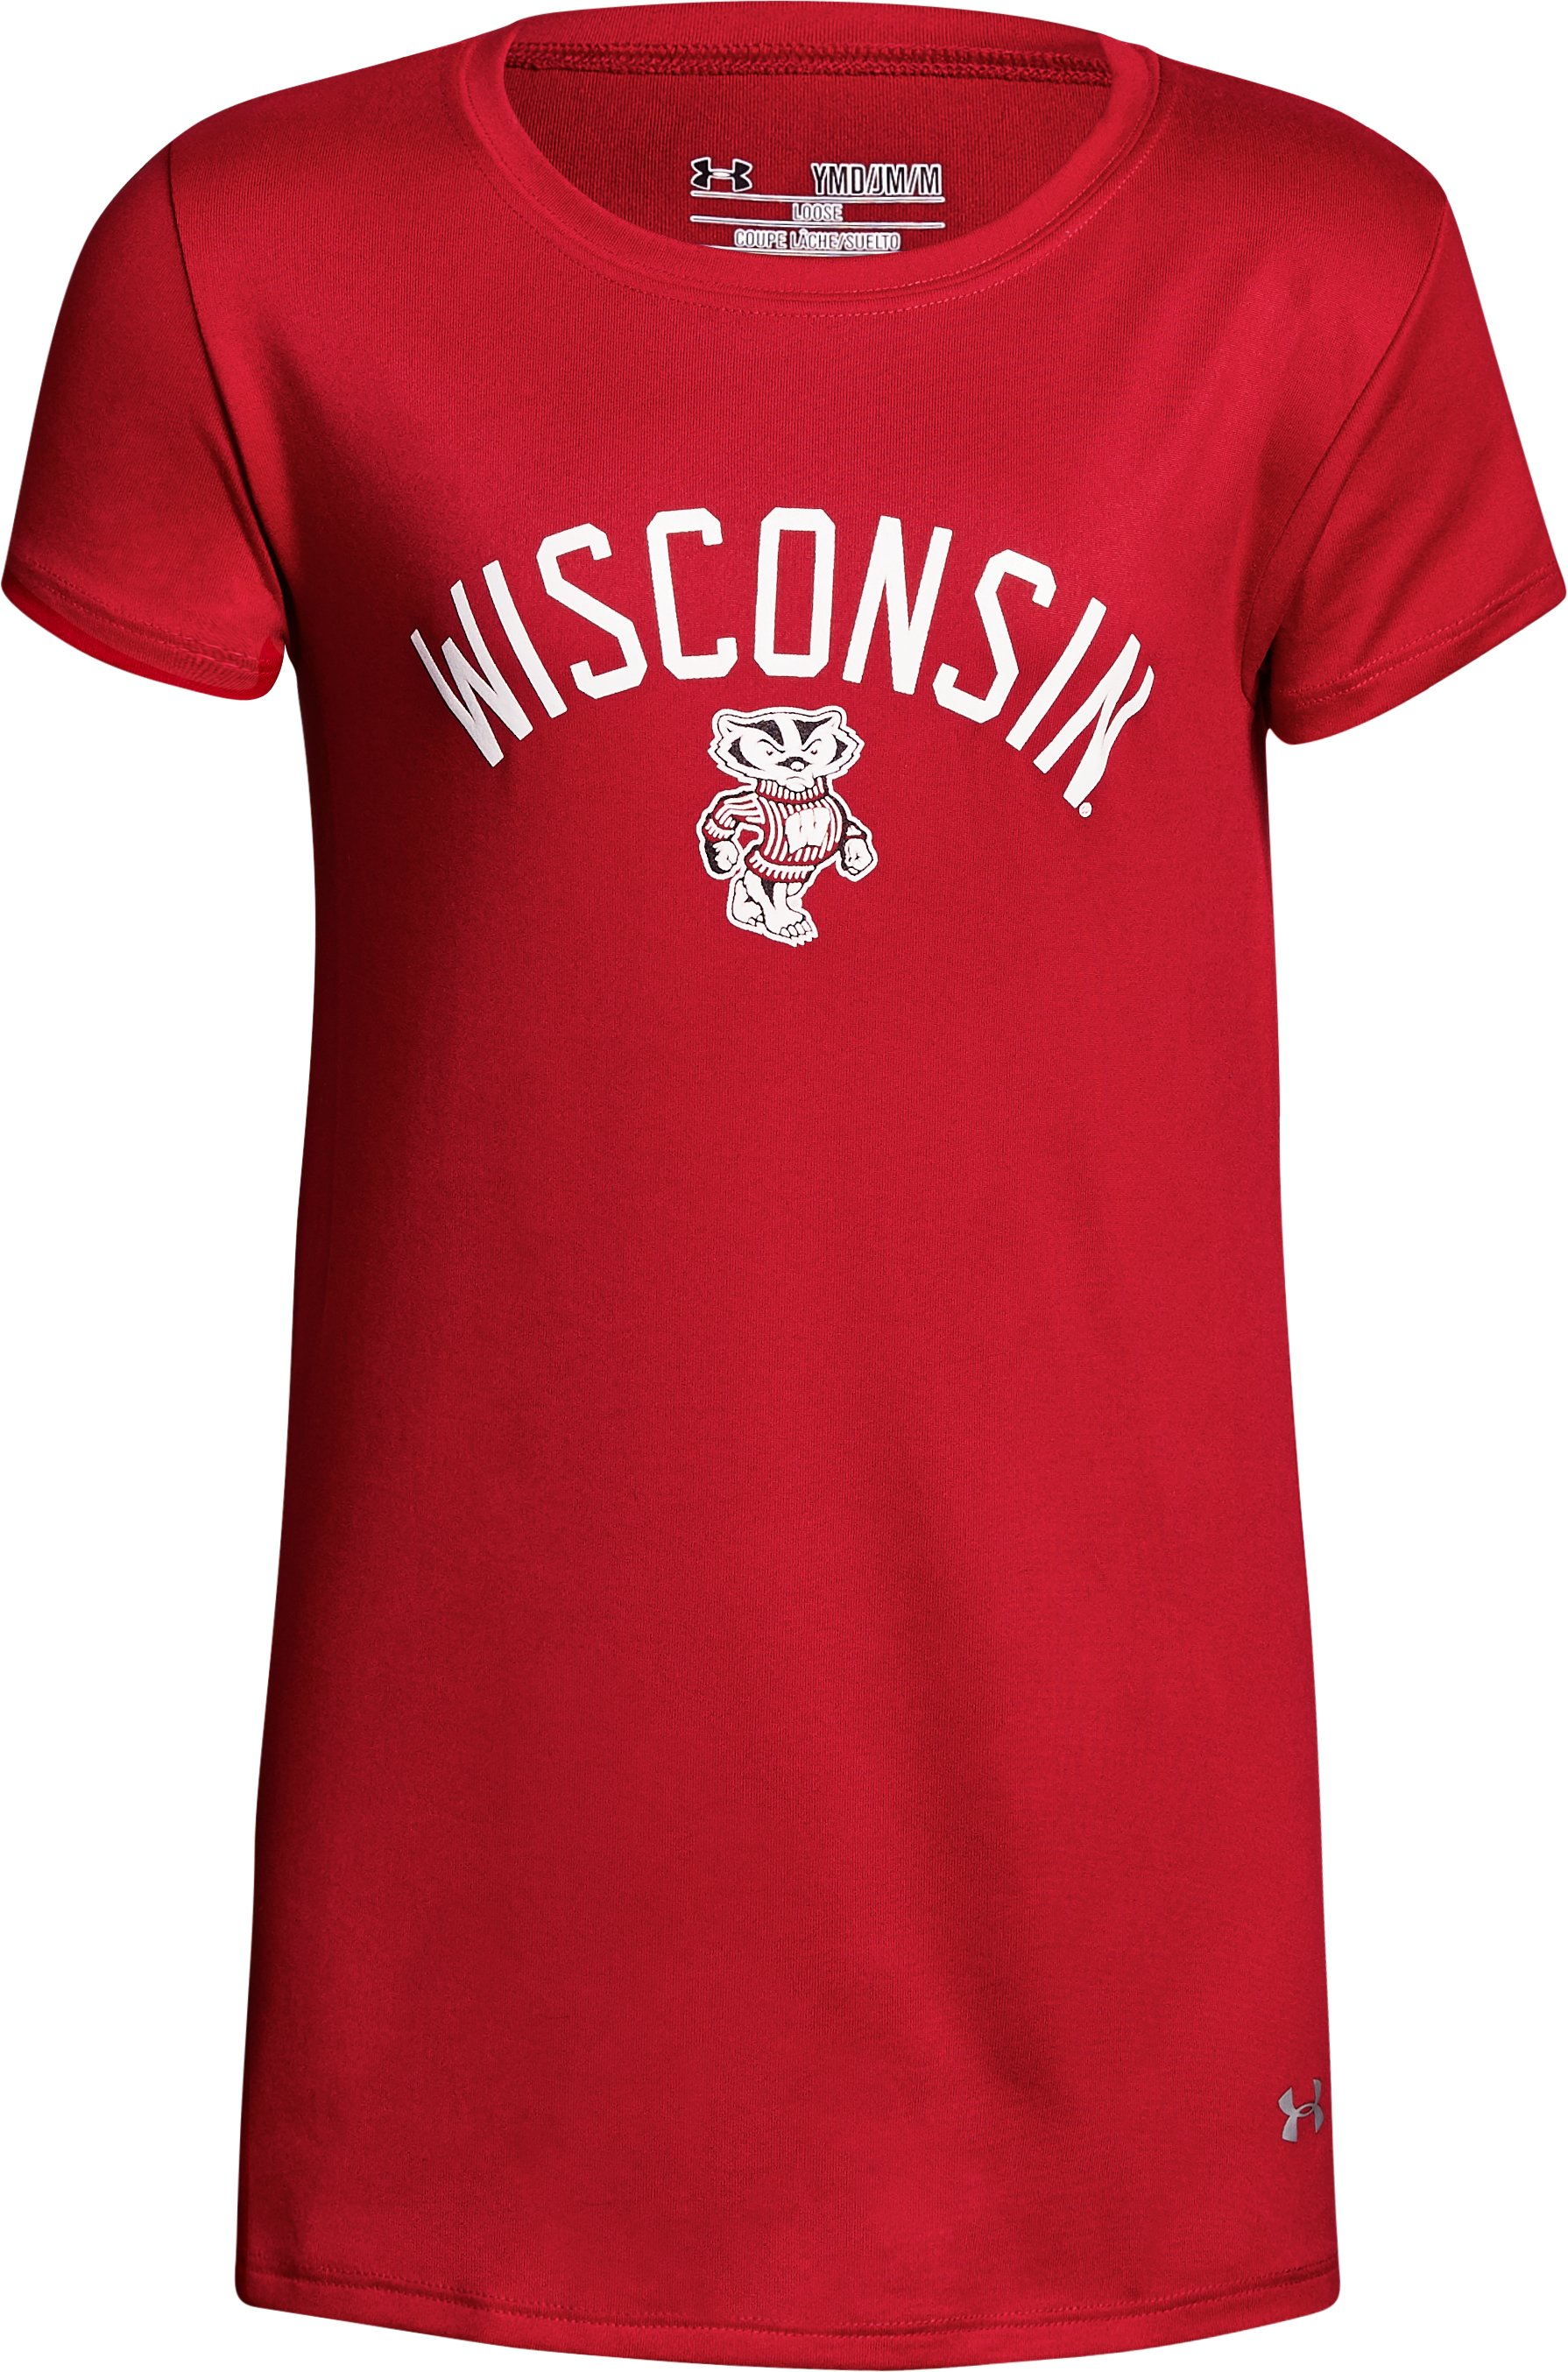 Girls' Wisconsin UA Graphic T-Shirt 1 Color $18.19